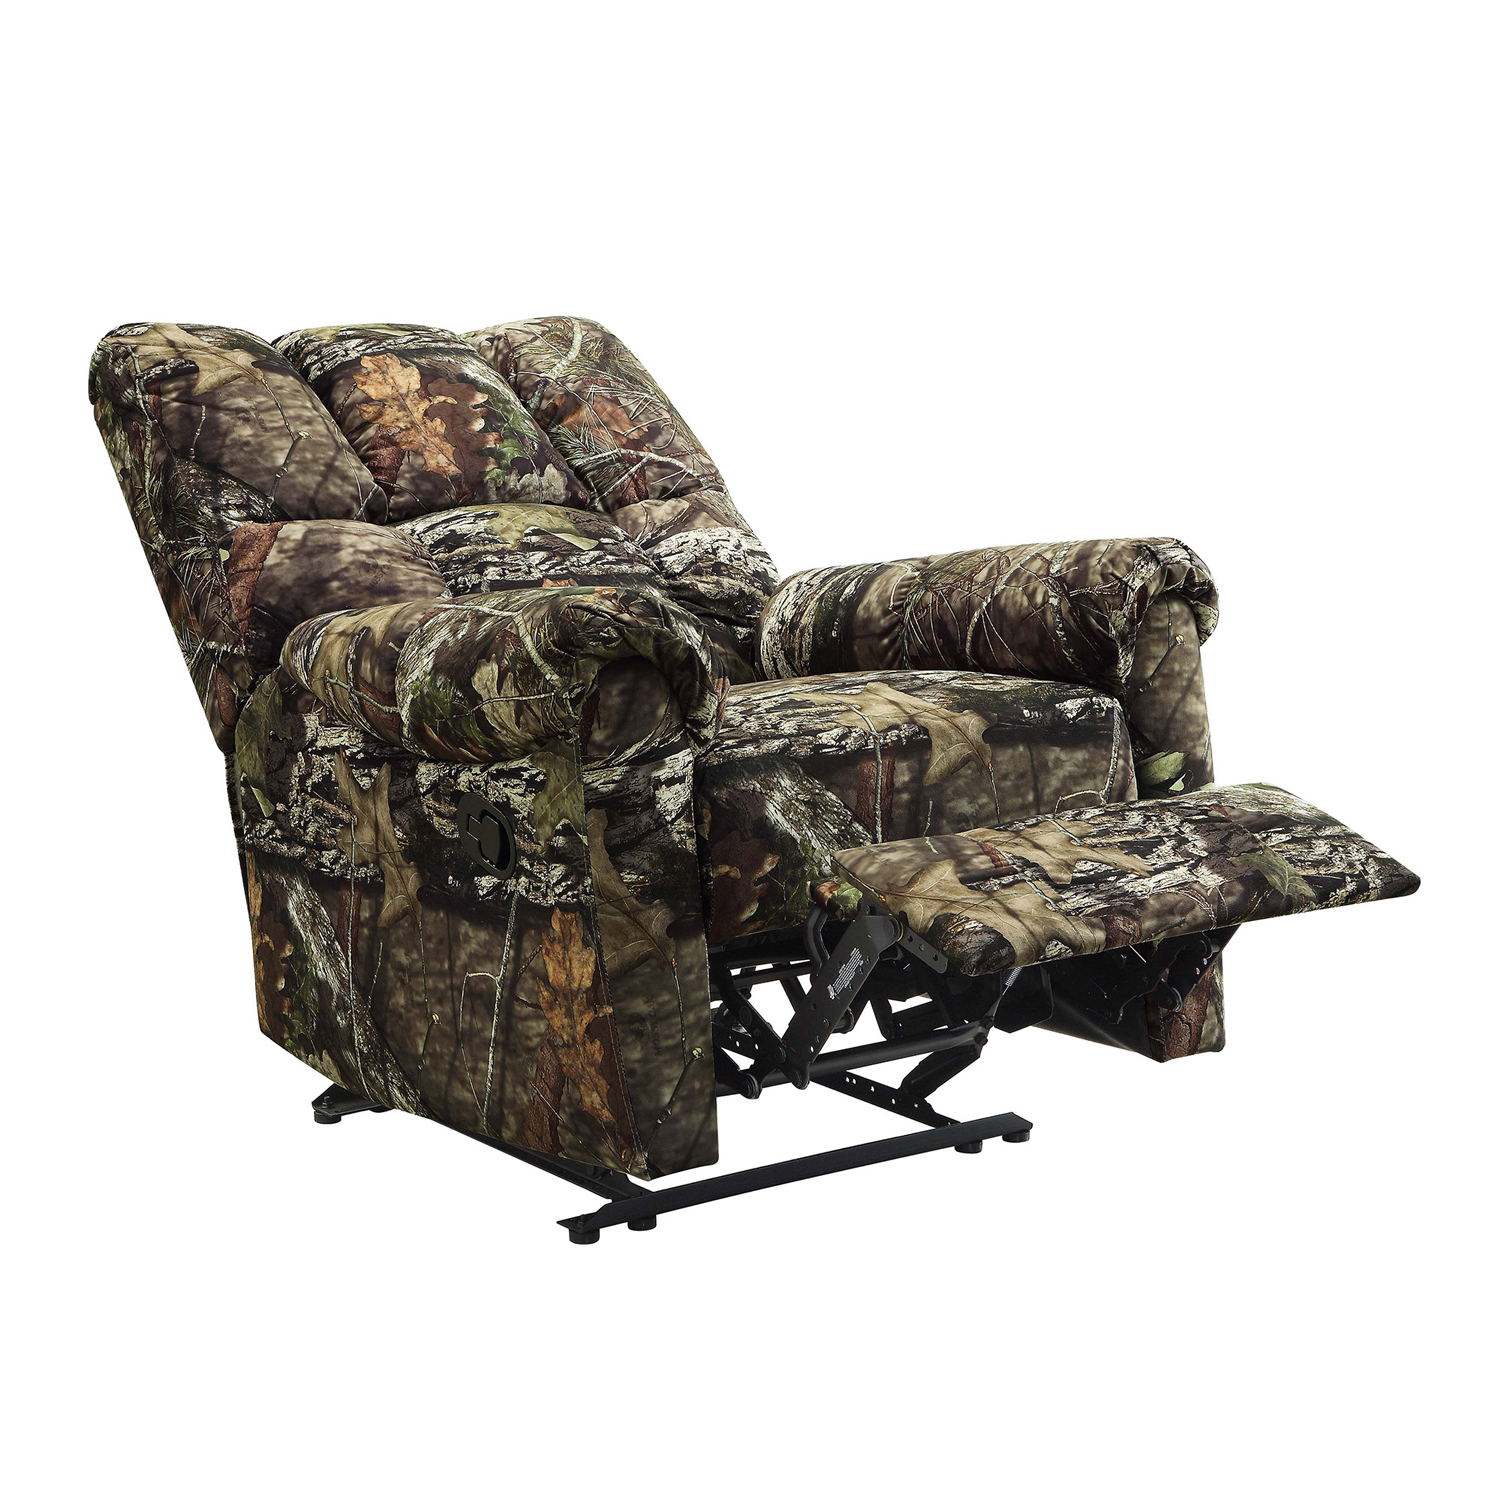 camo recliner chair foldable plans living room mossy oak hunter cabin rocking 3 day details about shipping